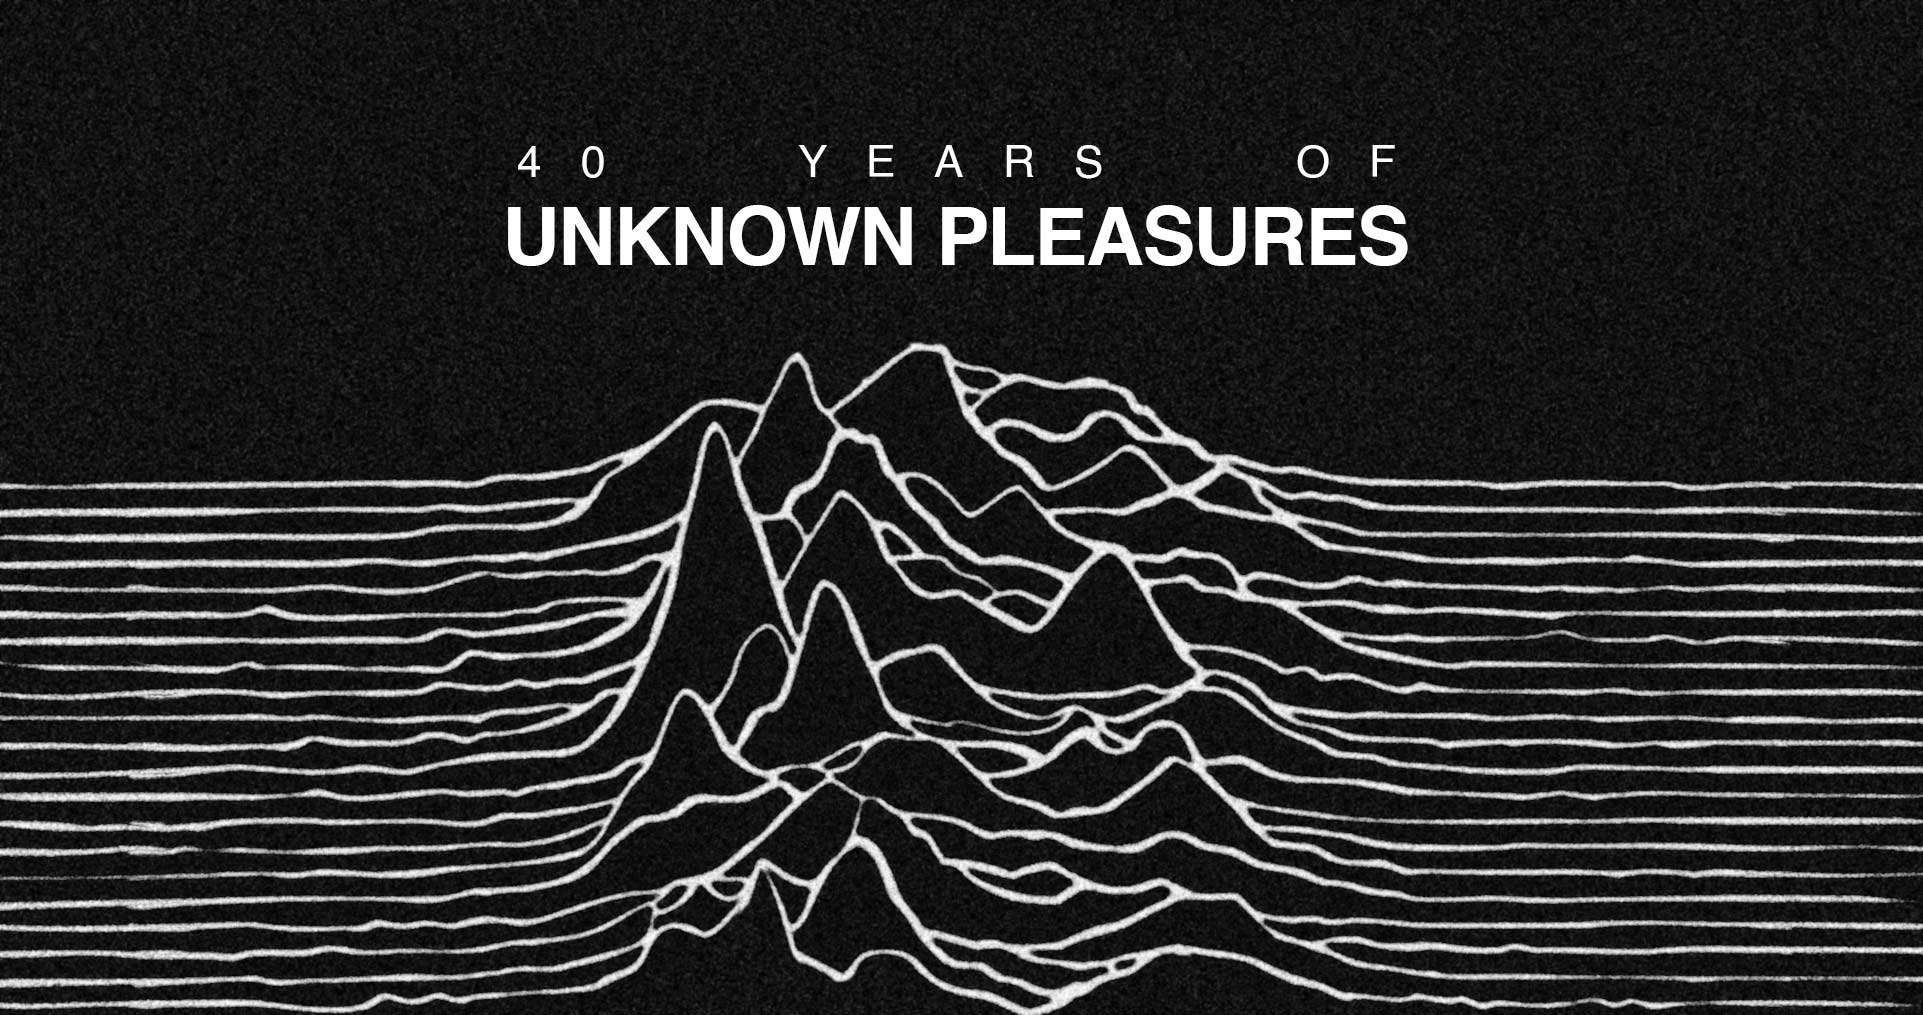 40YearsUnknownPleasures